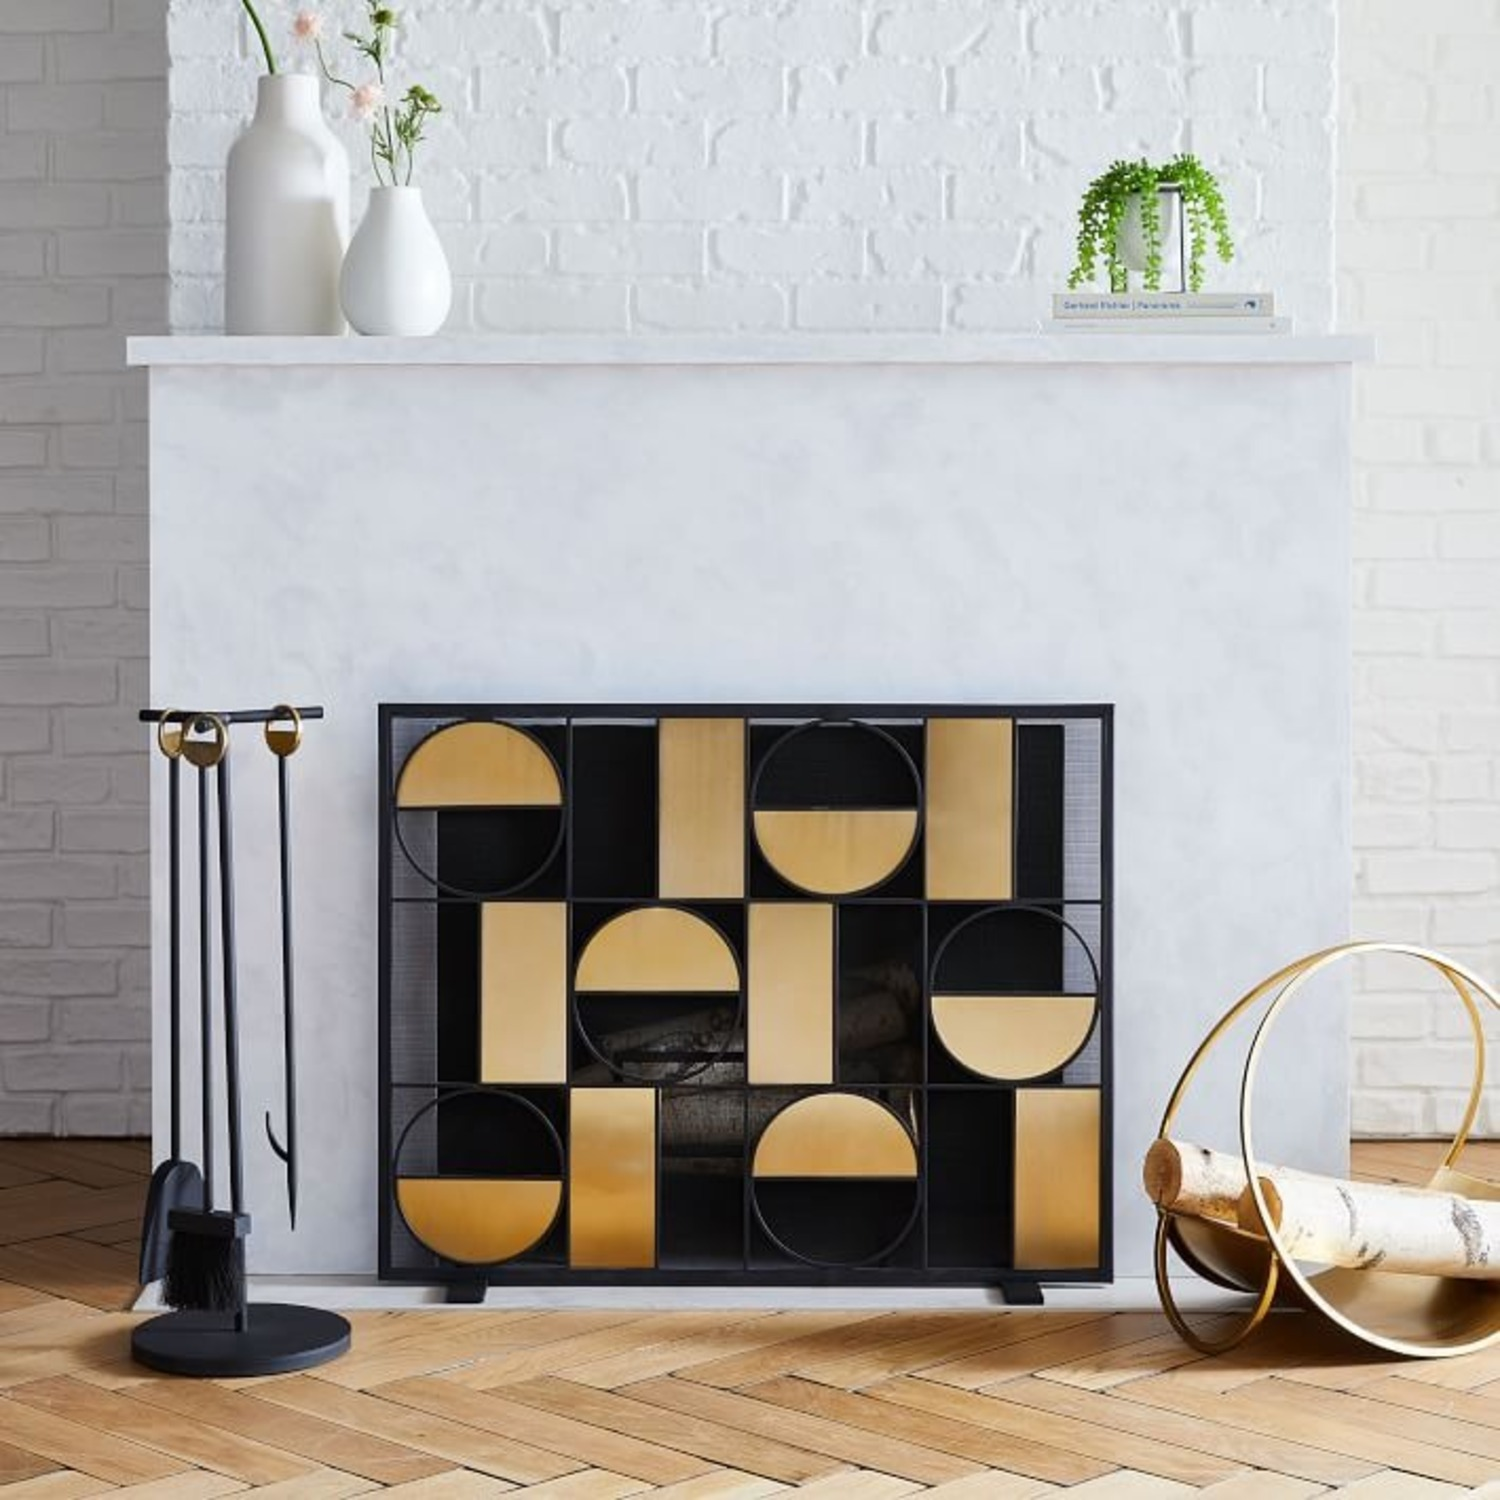 West Elm Cut Out Fireplace Tools - image-3